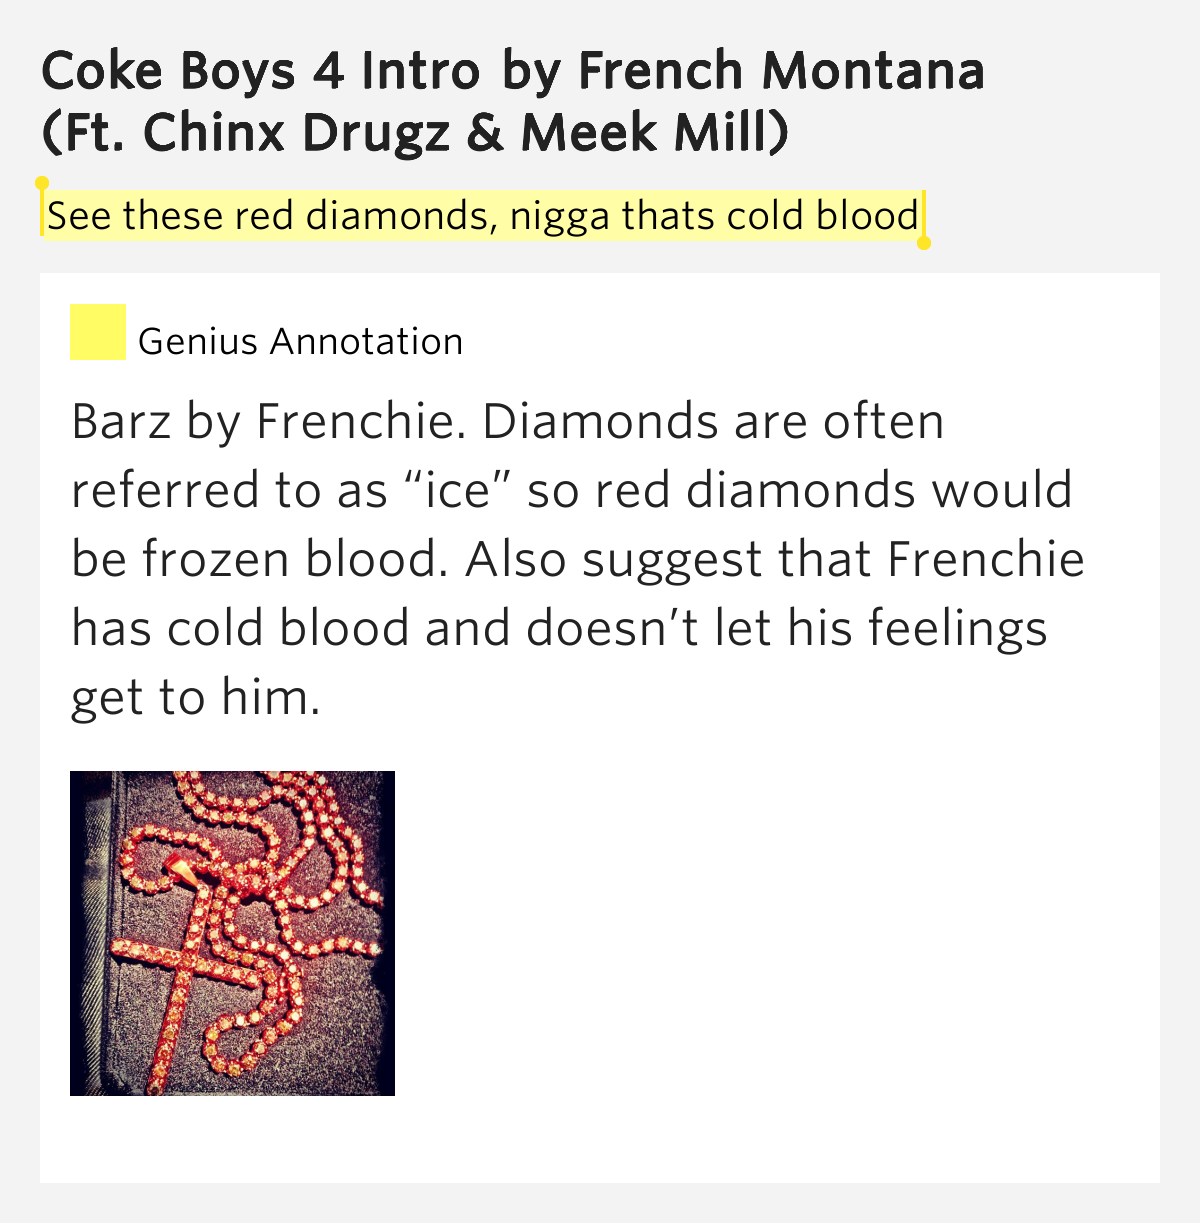 See These Red Diamonds, Nigga Thats Cold Blood